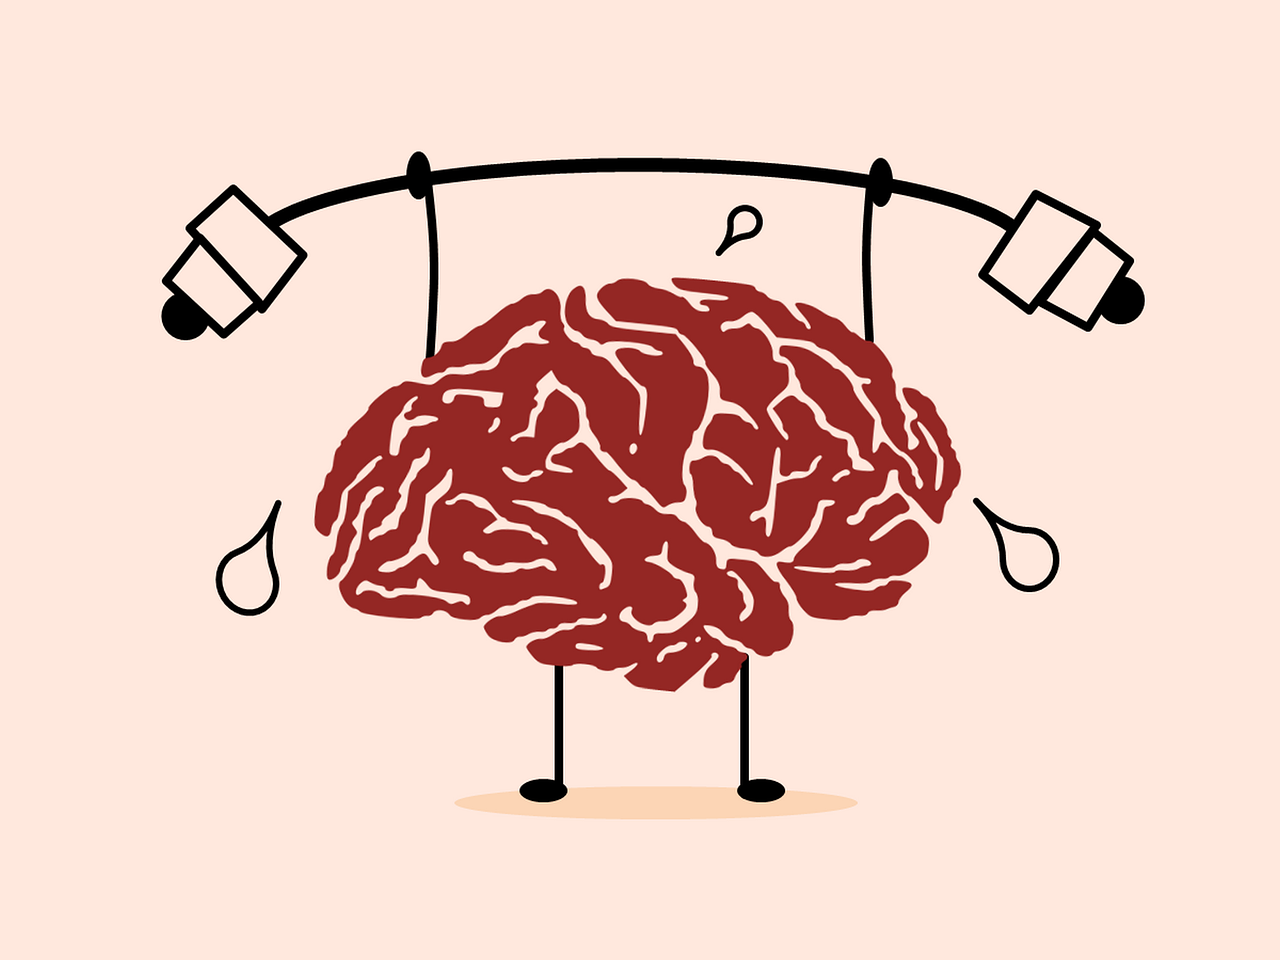 Exercise clipart mental exercise. Good for the mind